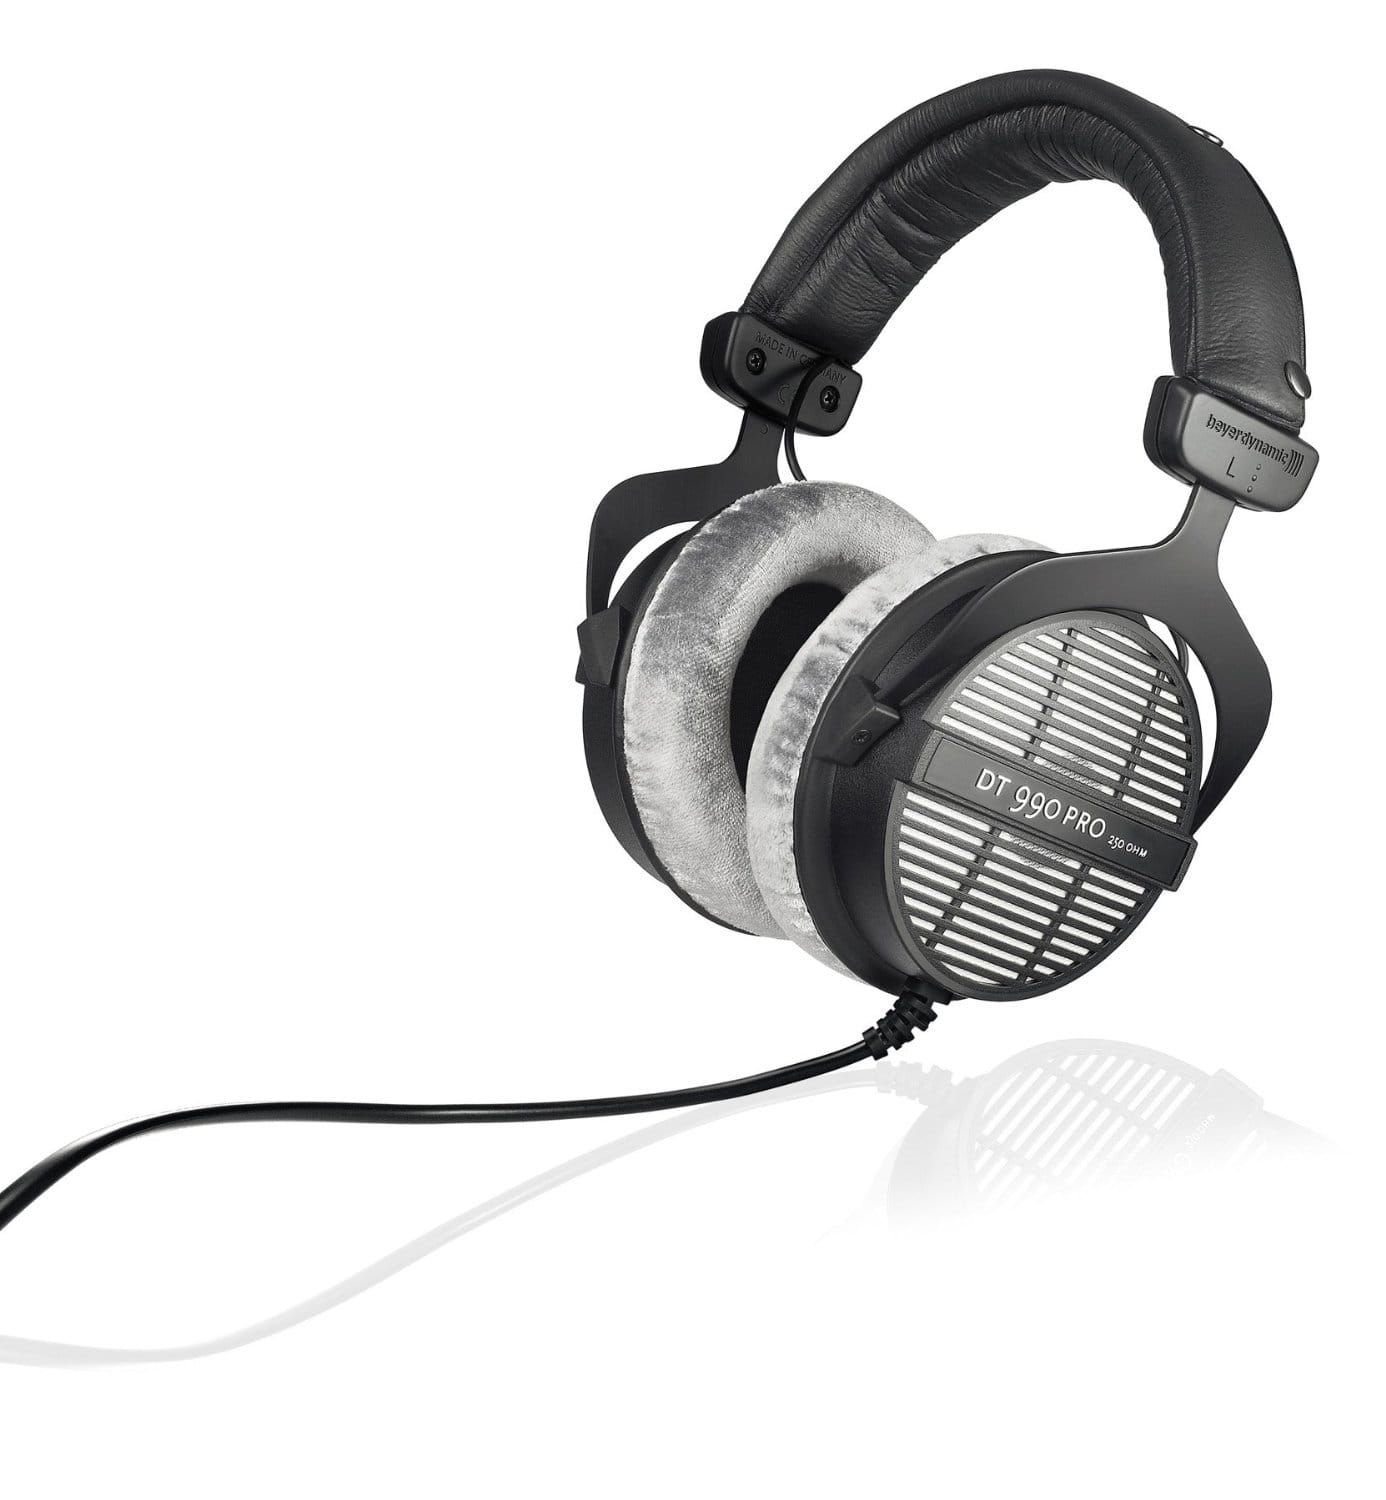 Beyerdynamic DT-990 Pro 250Ohm Headphones  $132 After $35 Rebate + Free Shipping